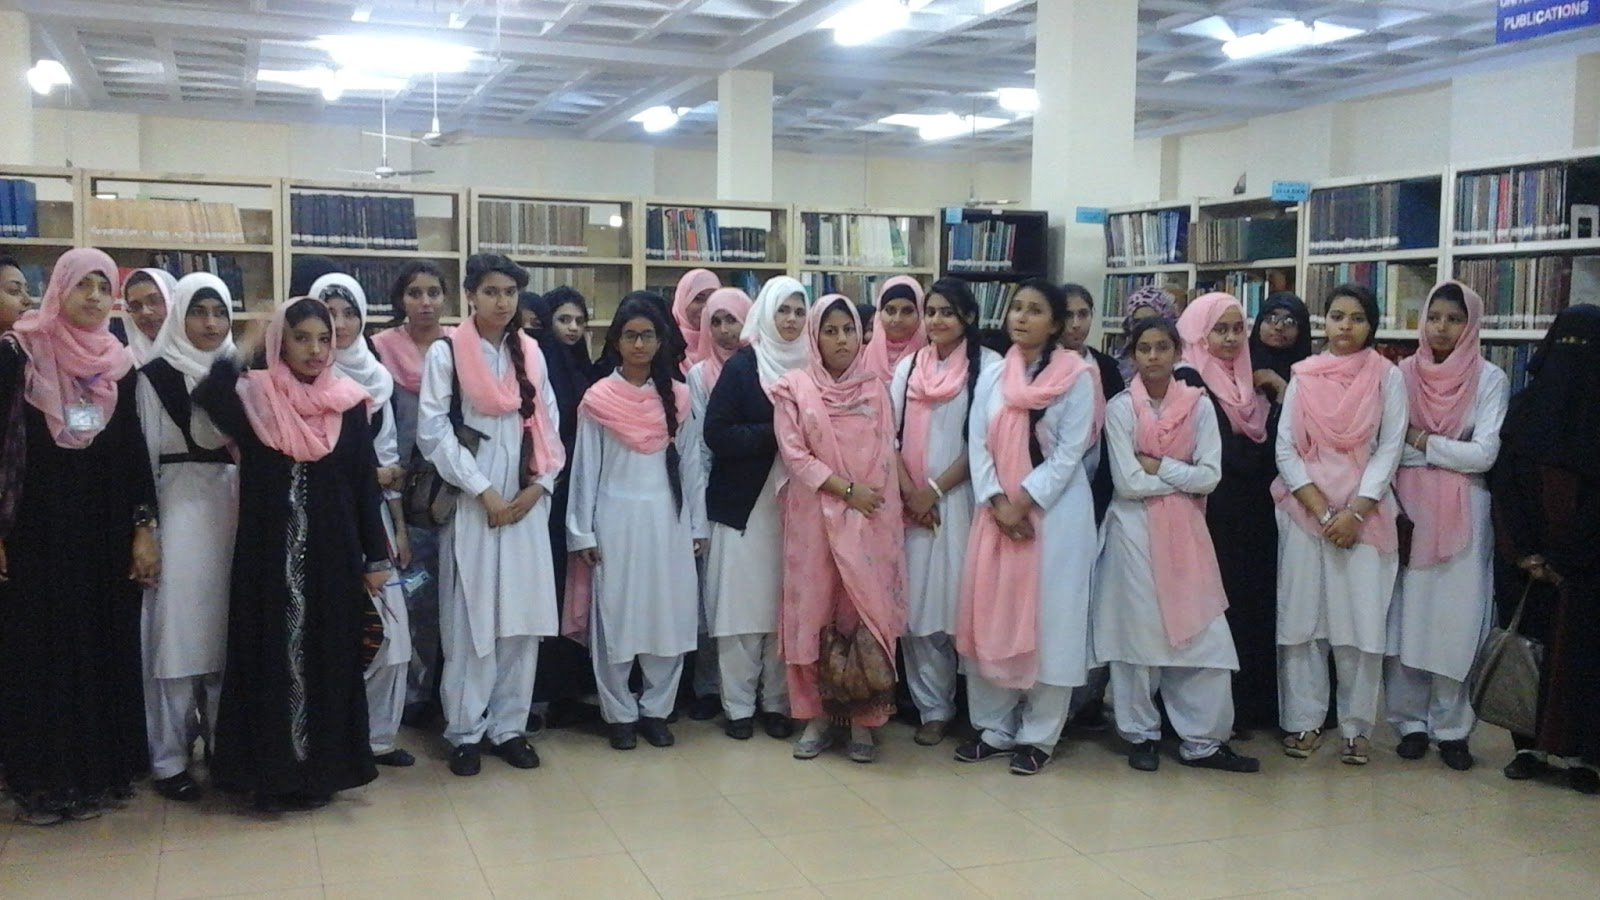 Punjab University Library Govt Girls College Wahdat Road, Lahore-9030